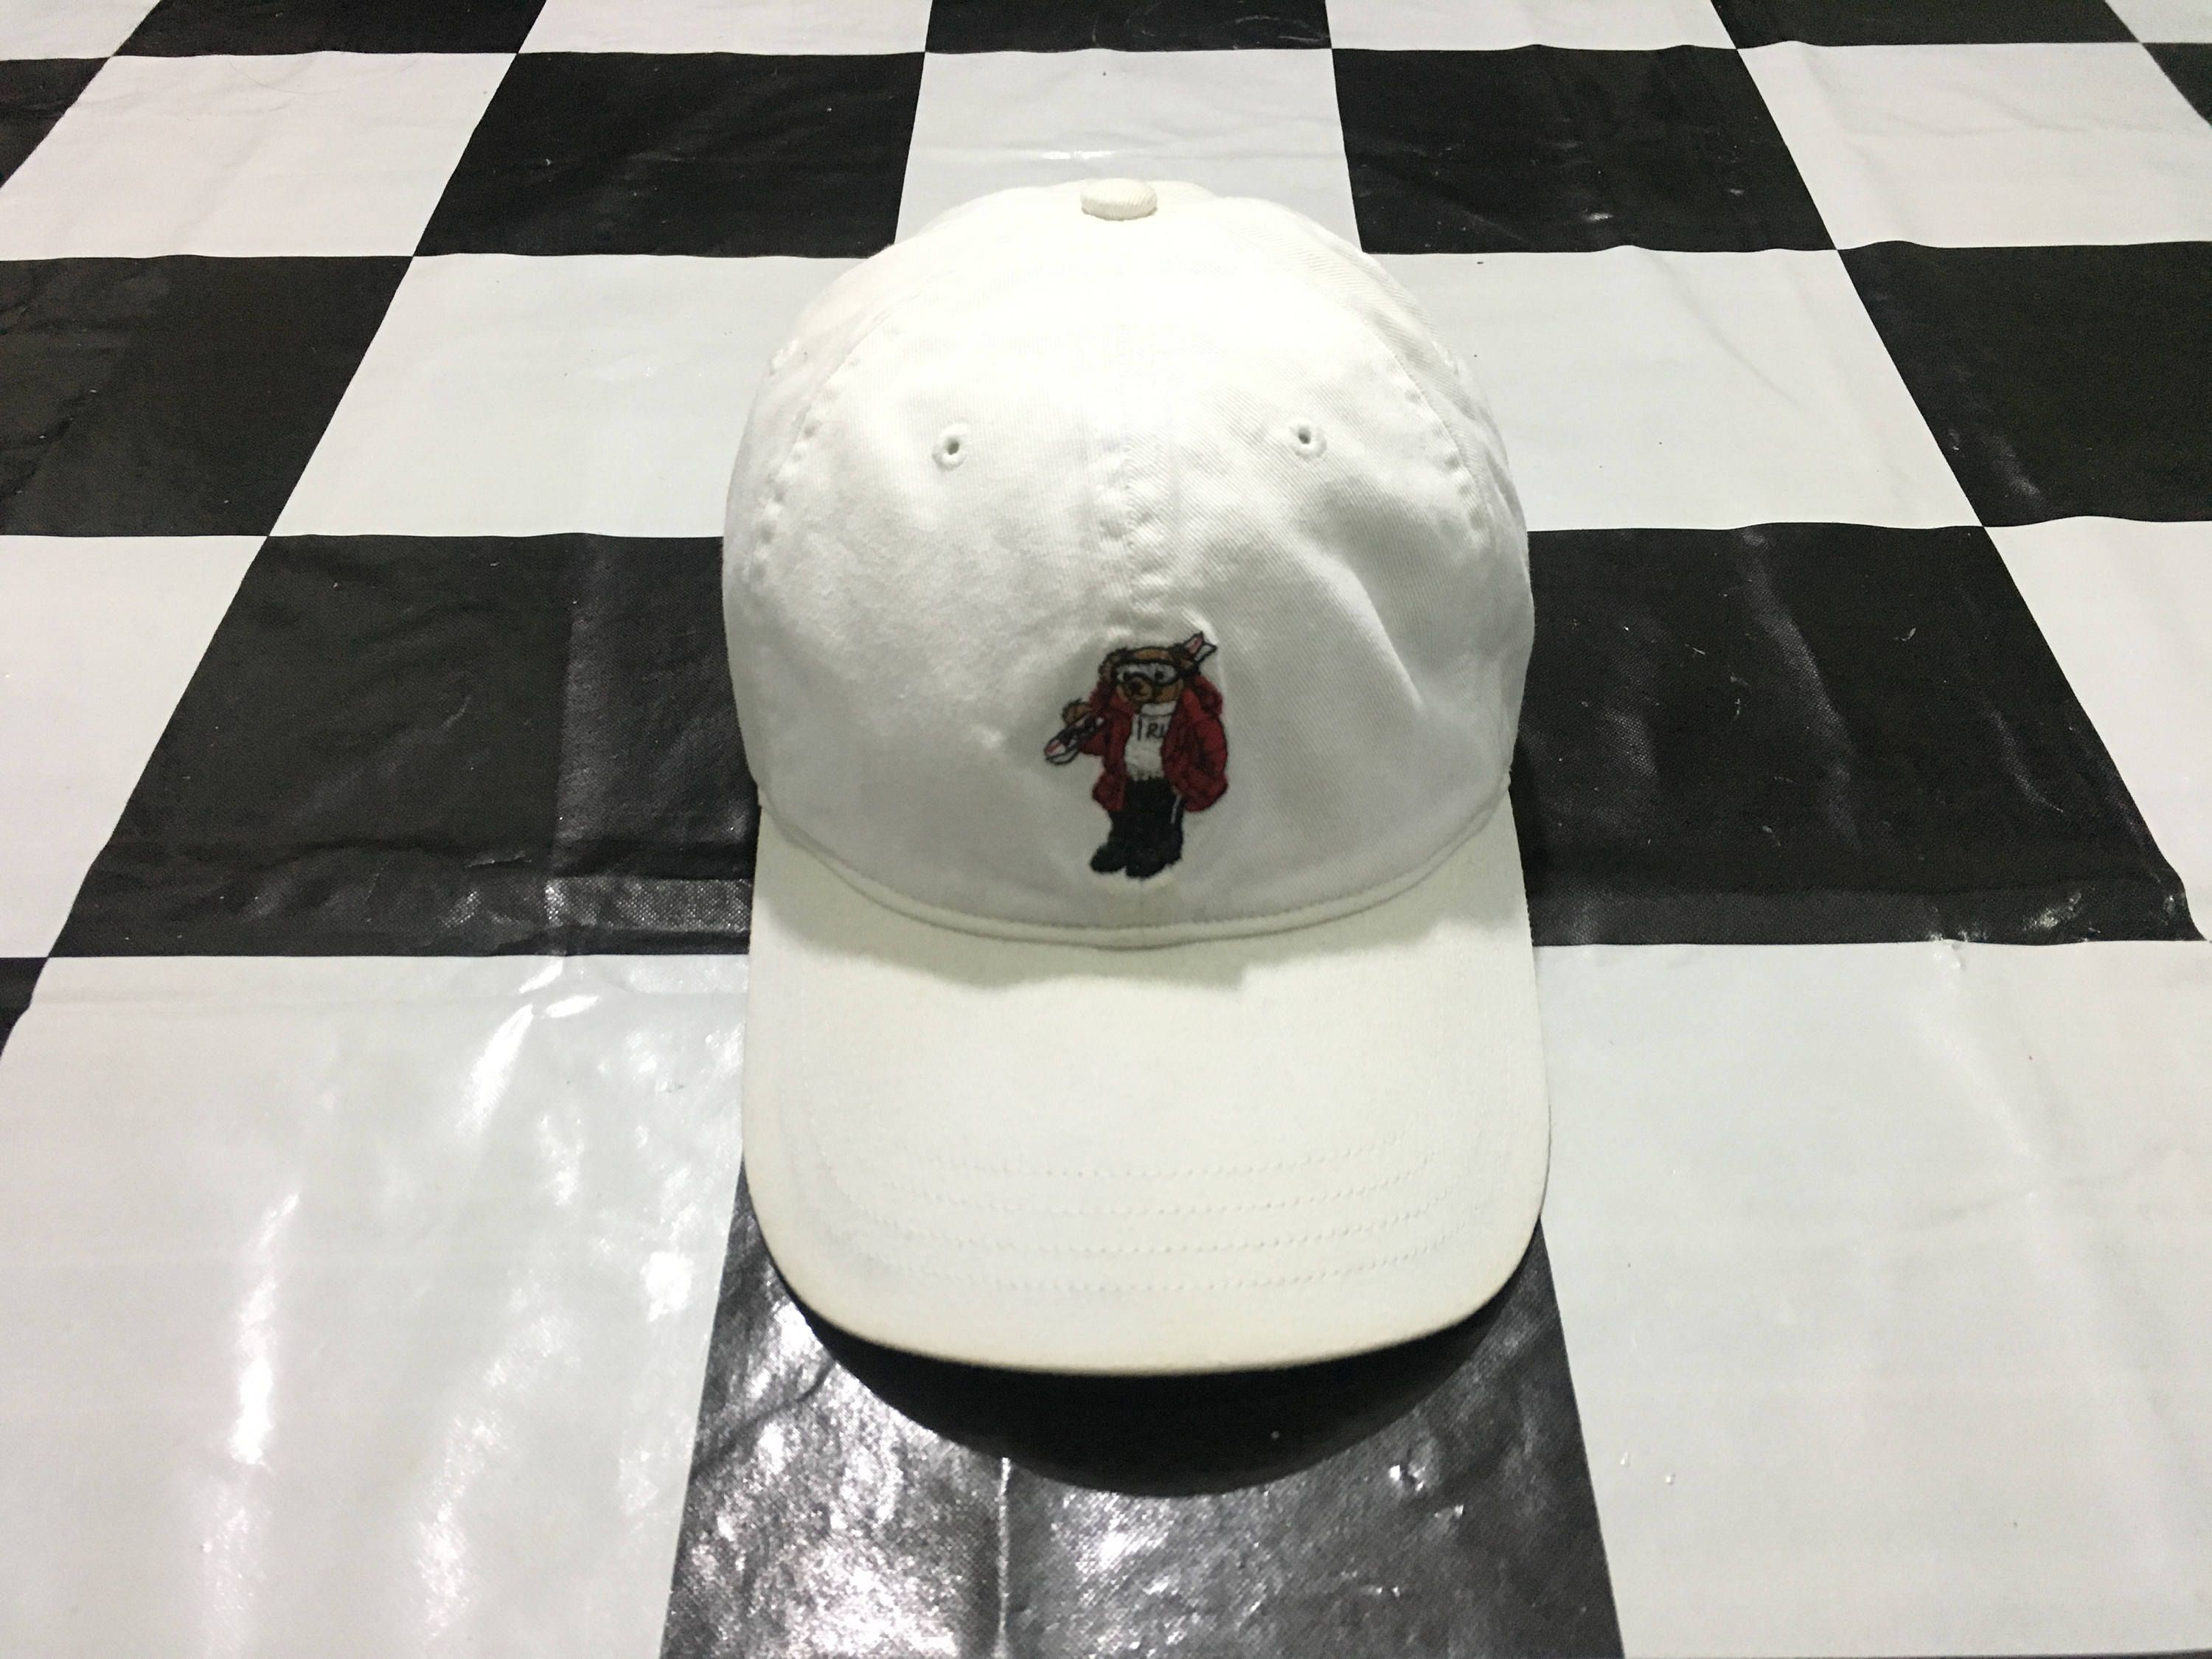 1d2d05659748a Vintage Polo bear ski cap leather strapback White Excellent condition Polo  bear by Ralph Lauren by AlivevintageShop on Etsy